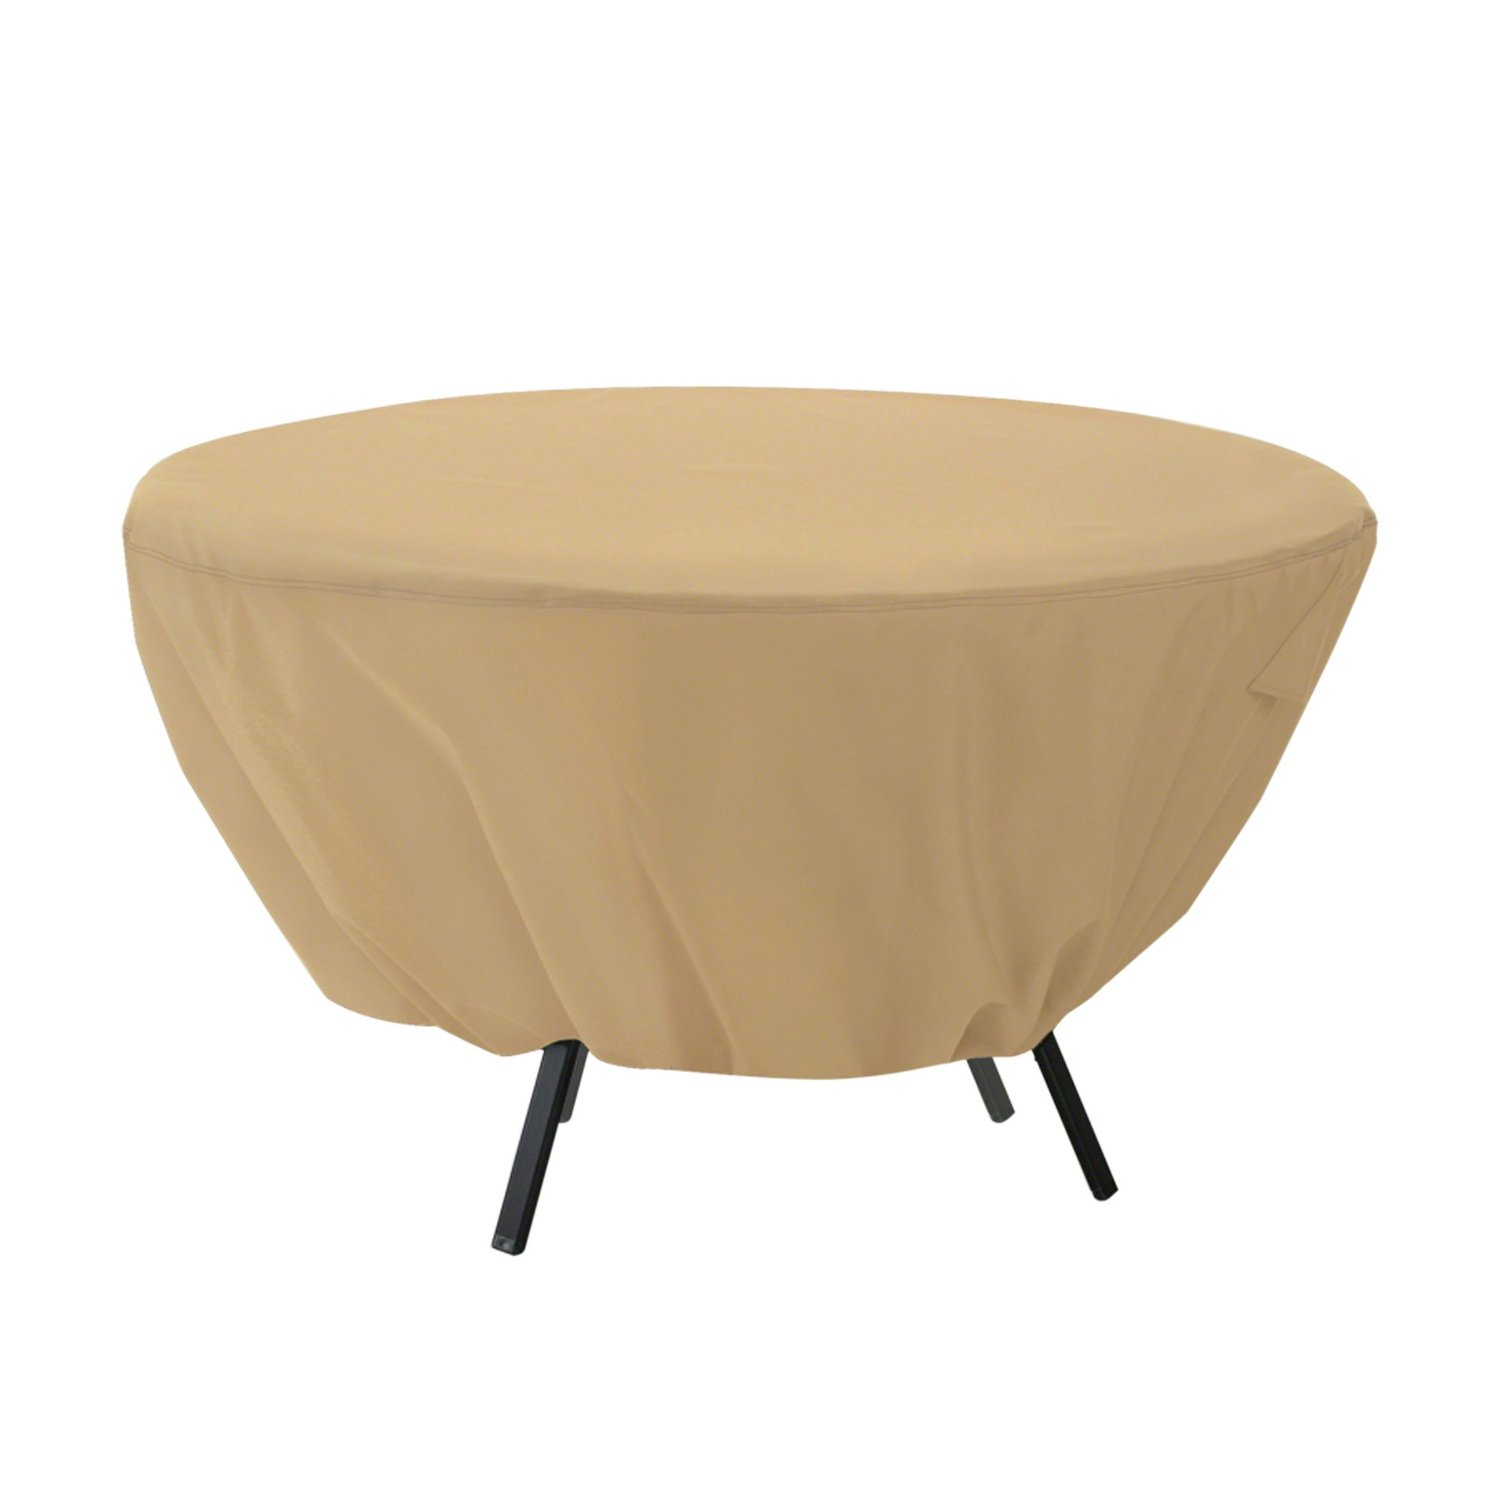 Picture of: Patio table cover round